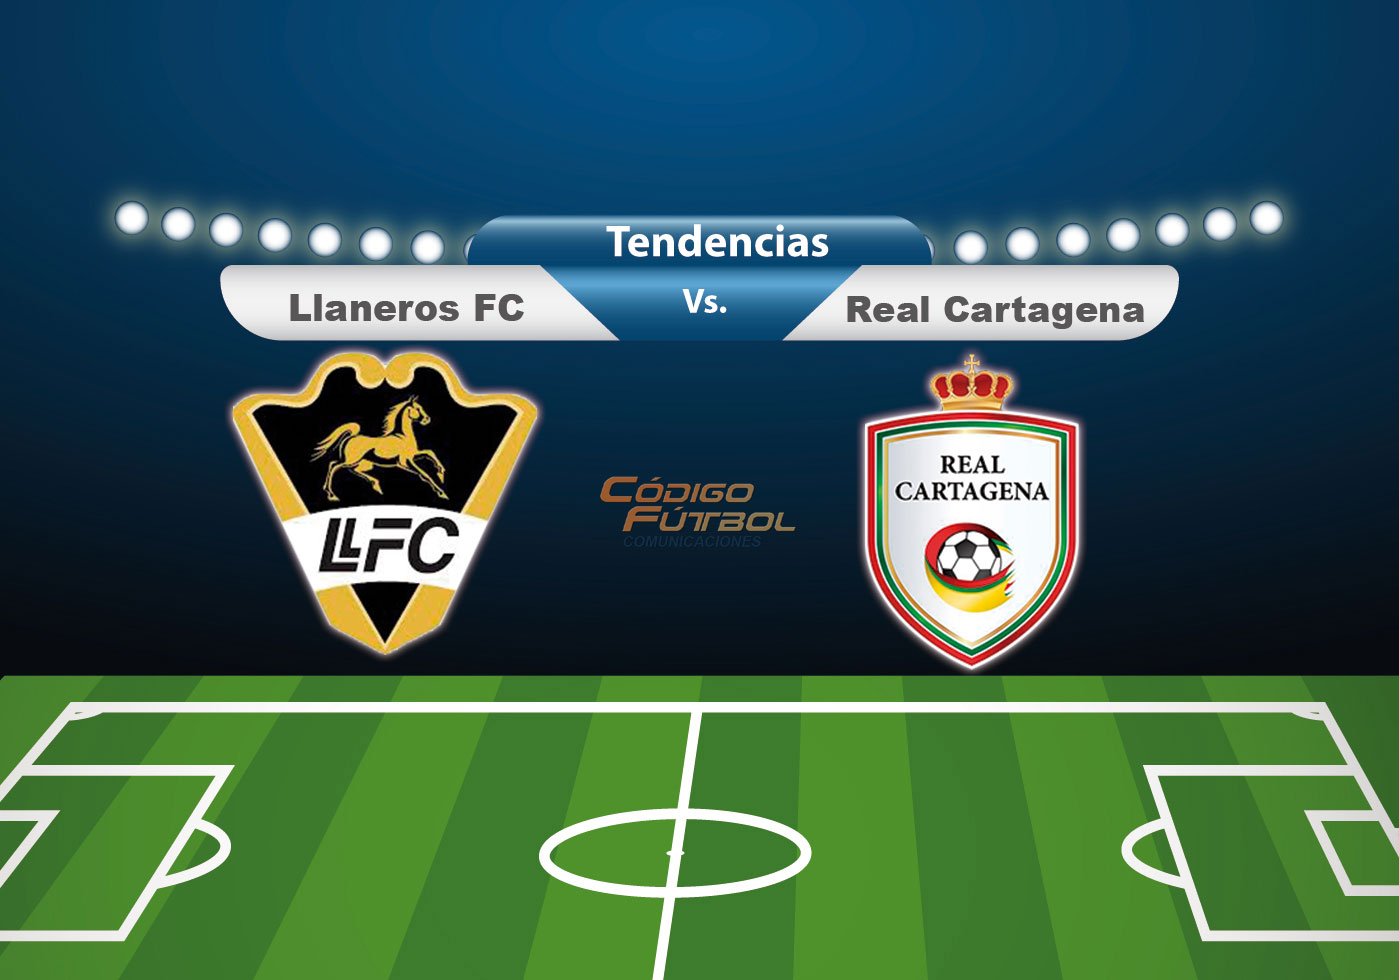 llaneros-fc-vs-Real-Cartage